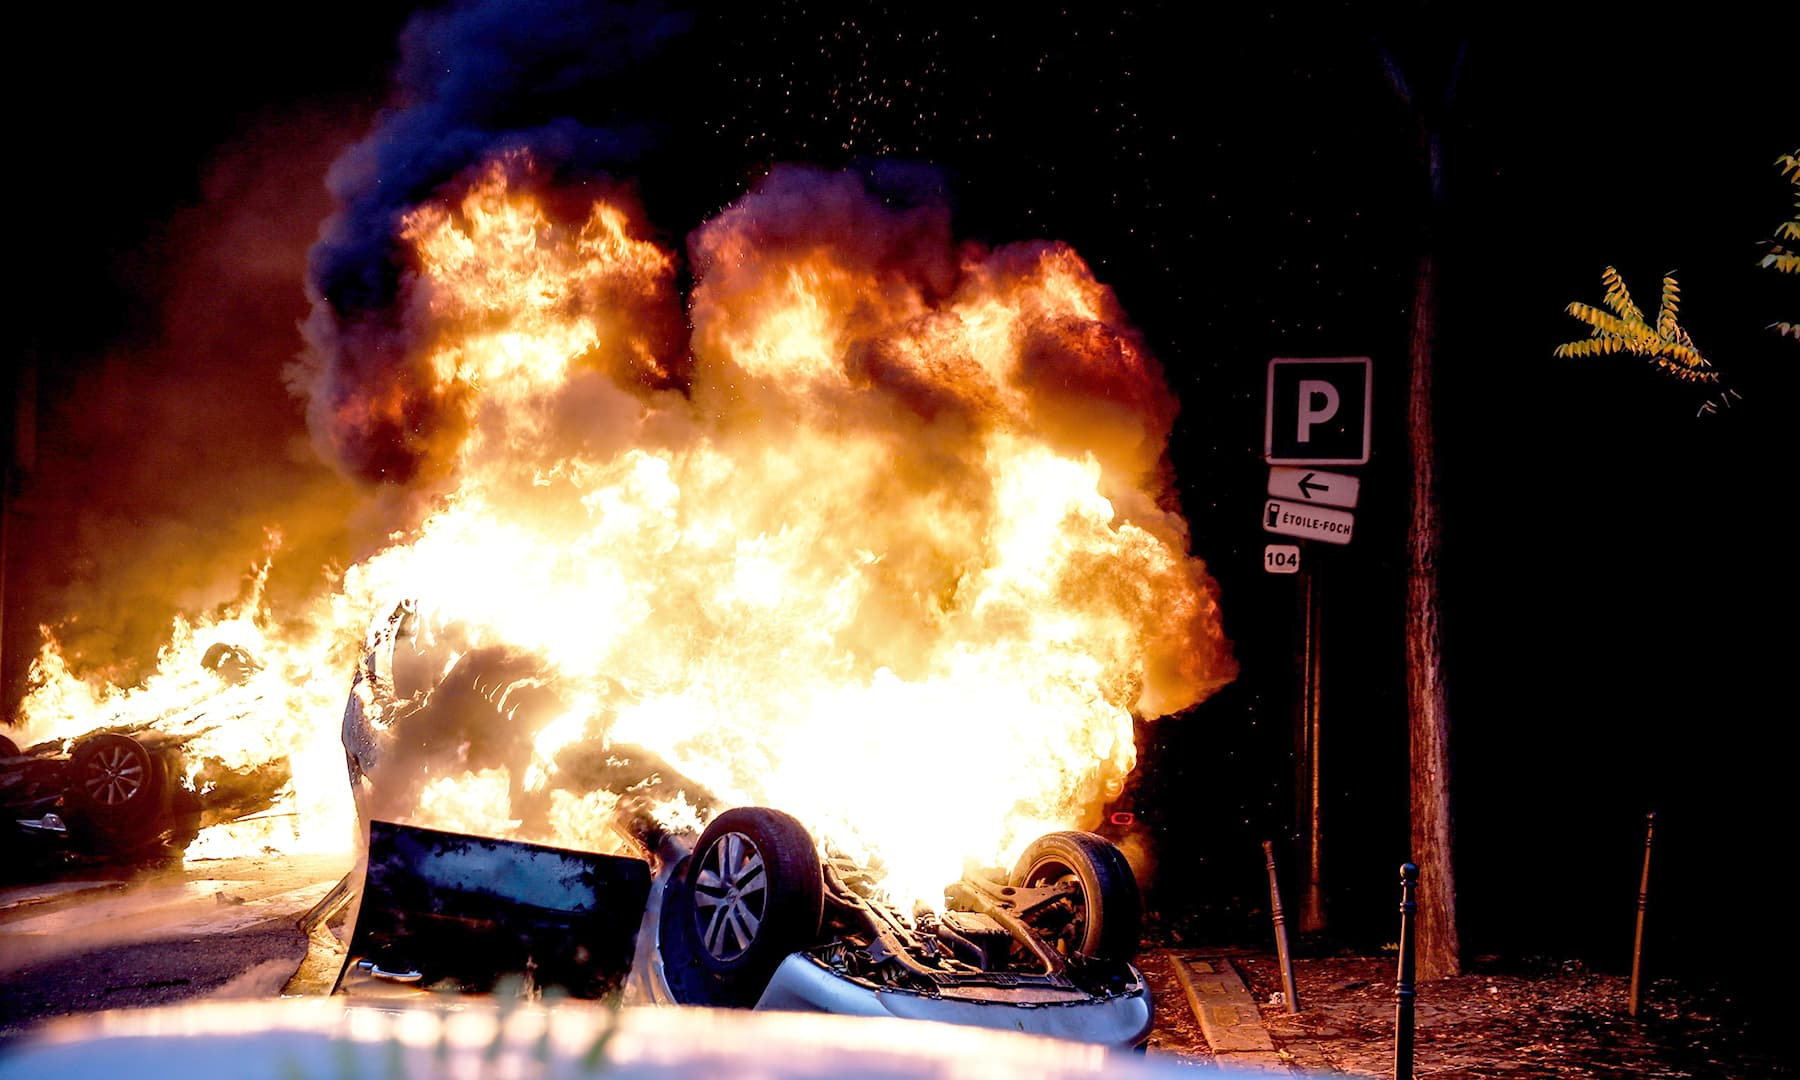 A car burns on the sideline of a demonstration by Yellow vests (Gilets jaunes). —AFP